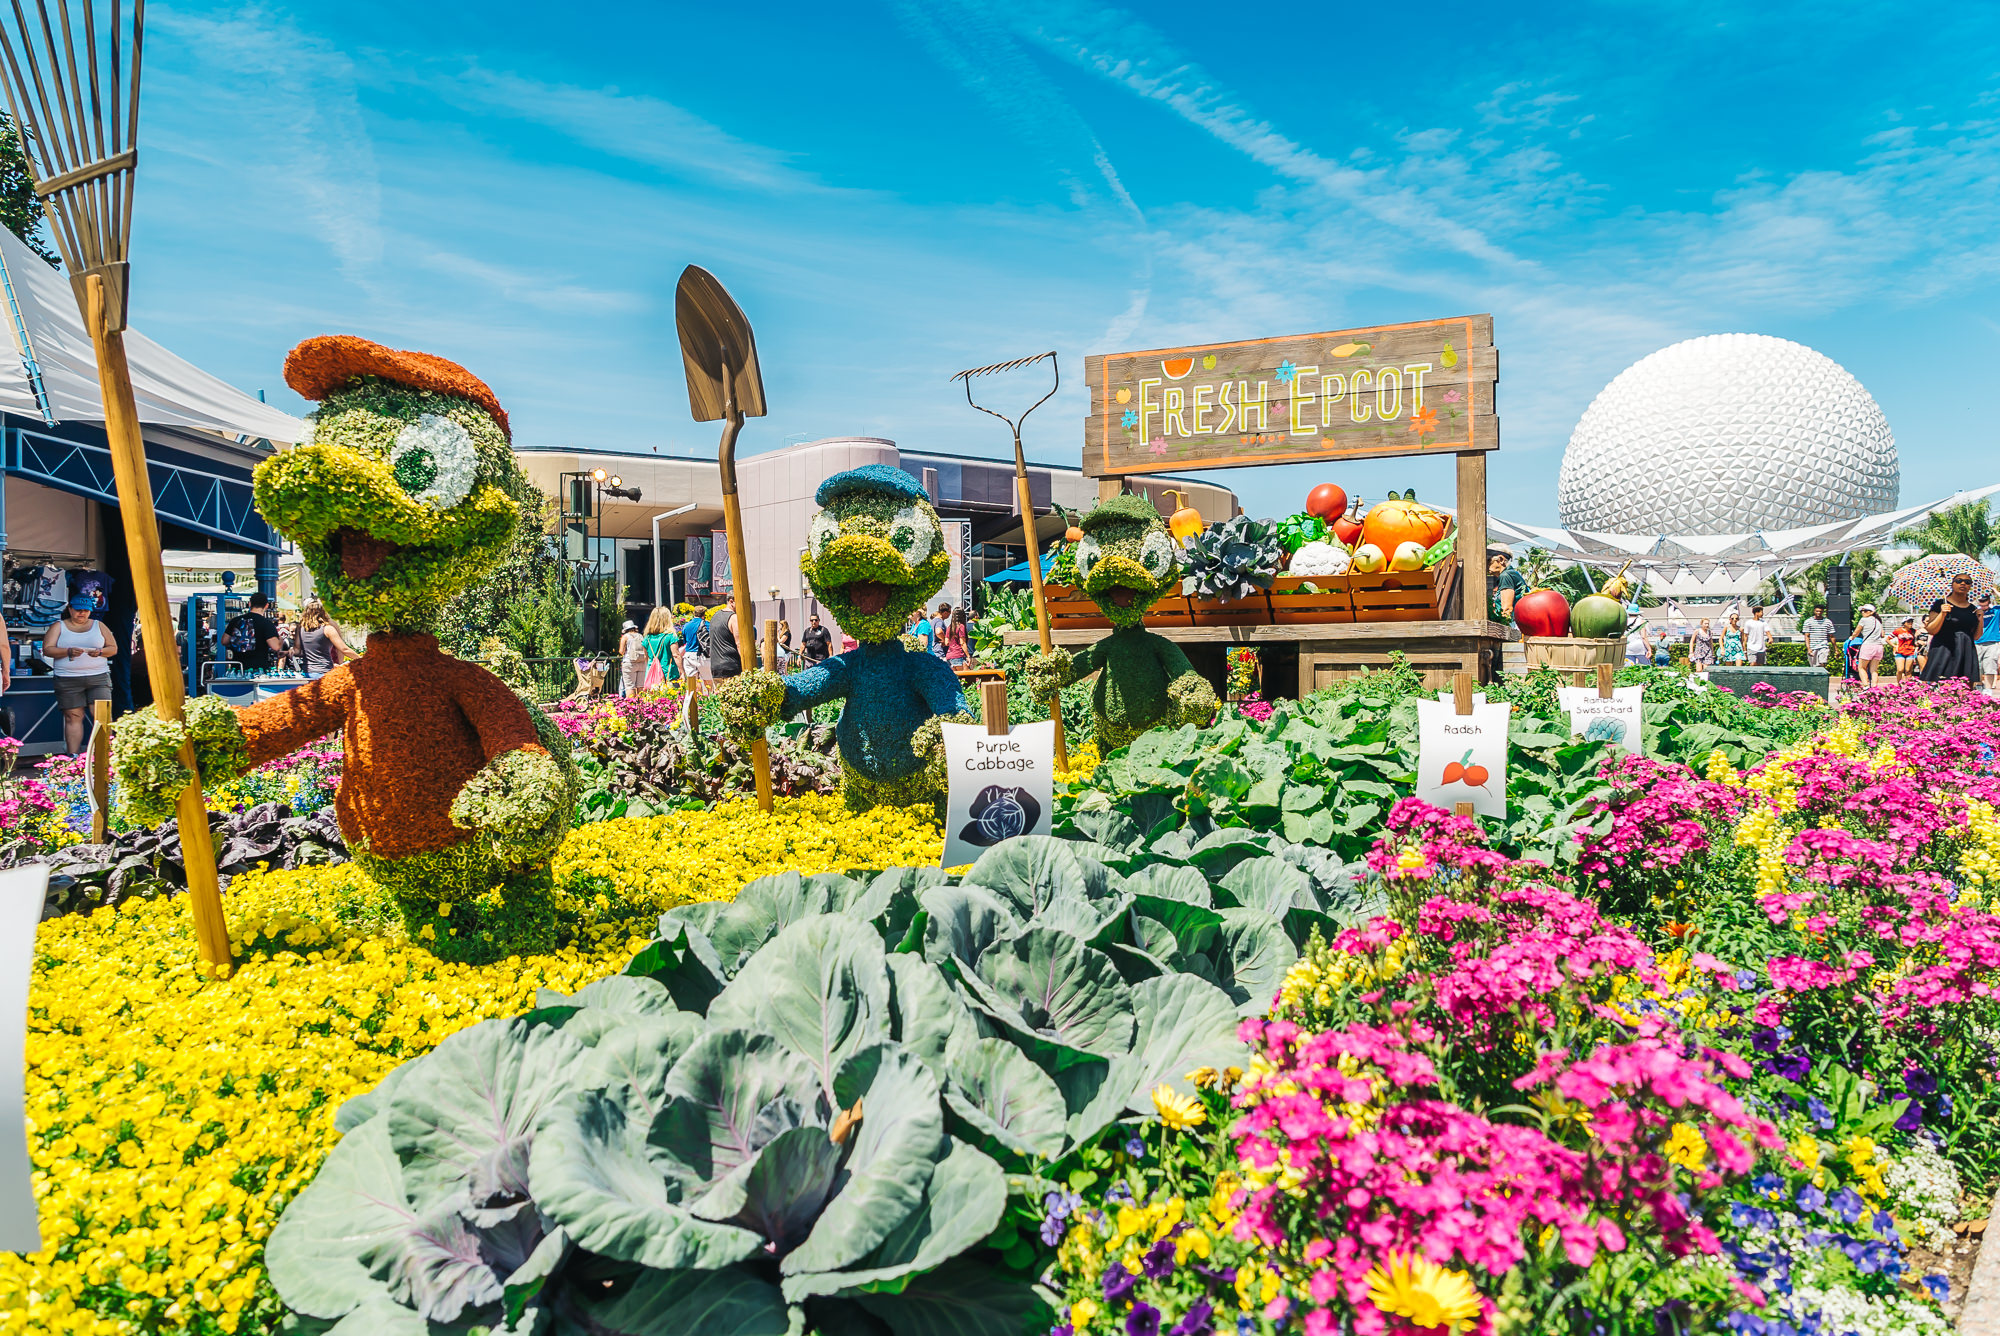 We happened to visit Epcot when the International Flower & Garden Festival was going on